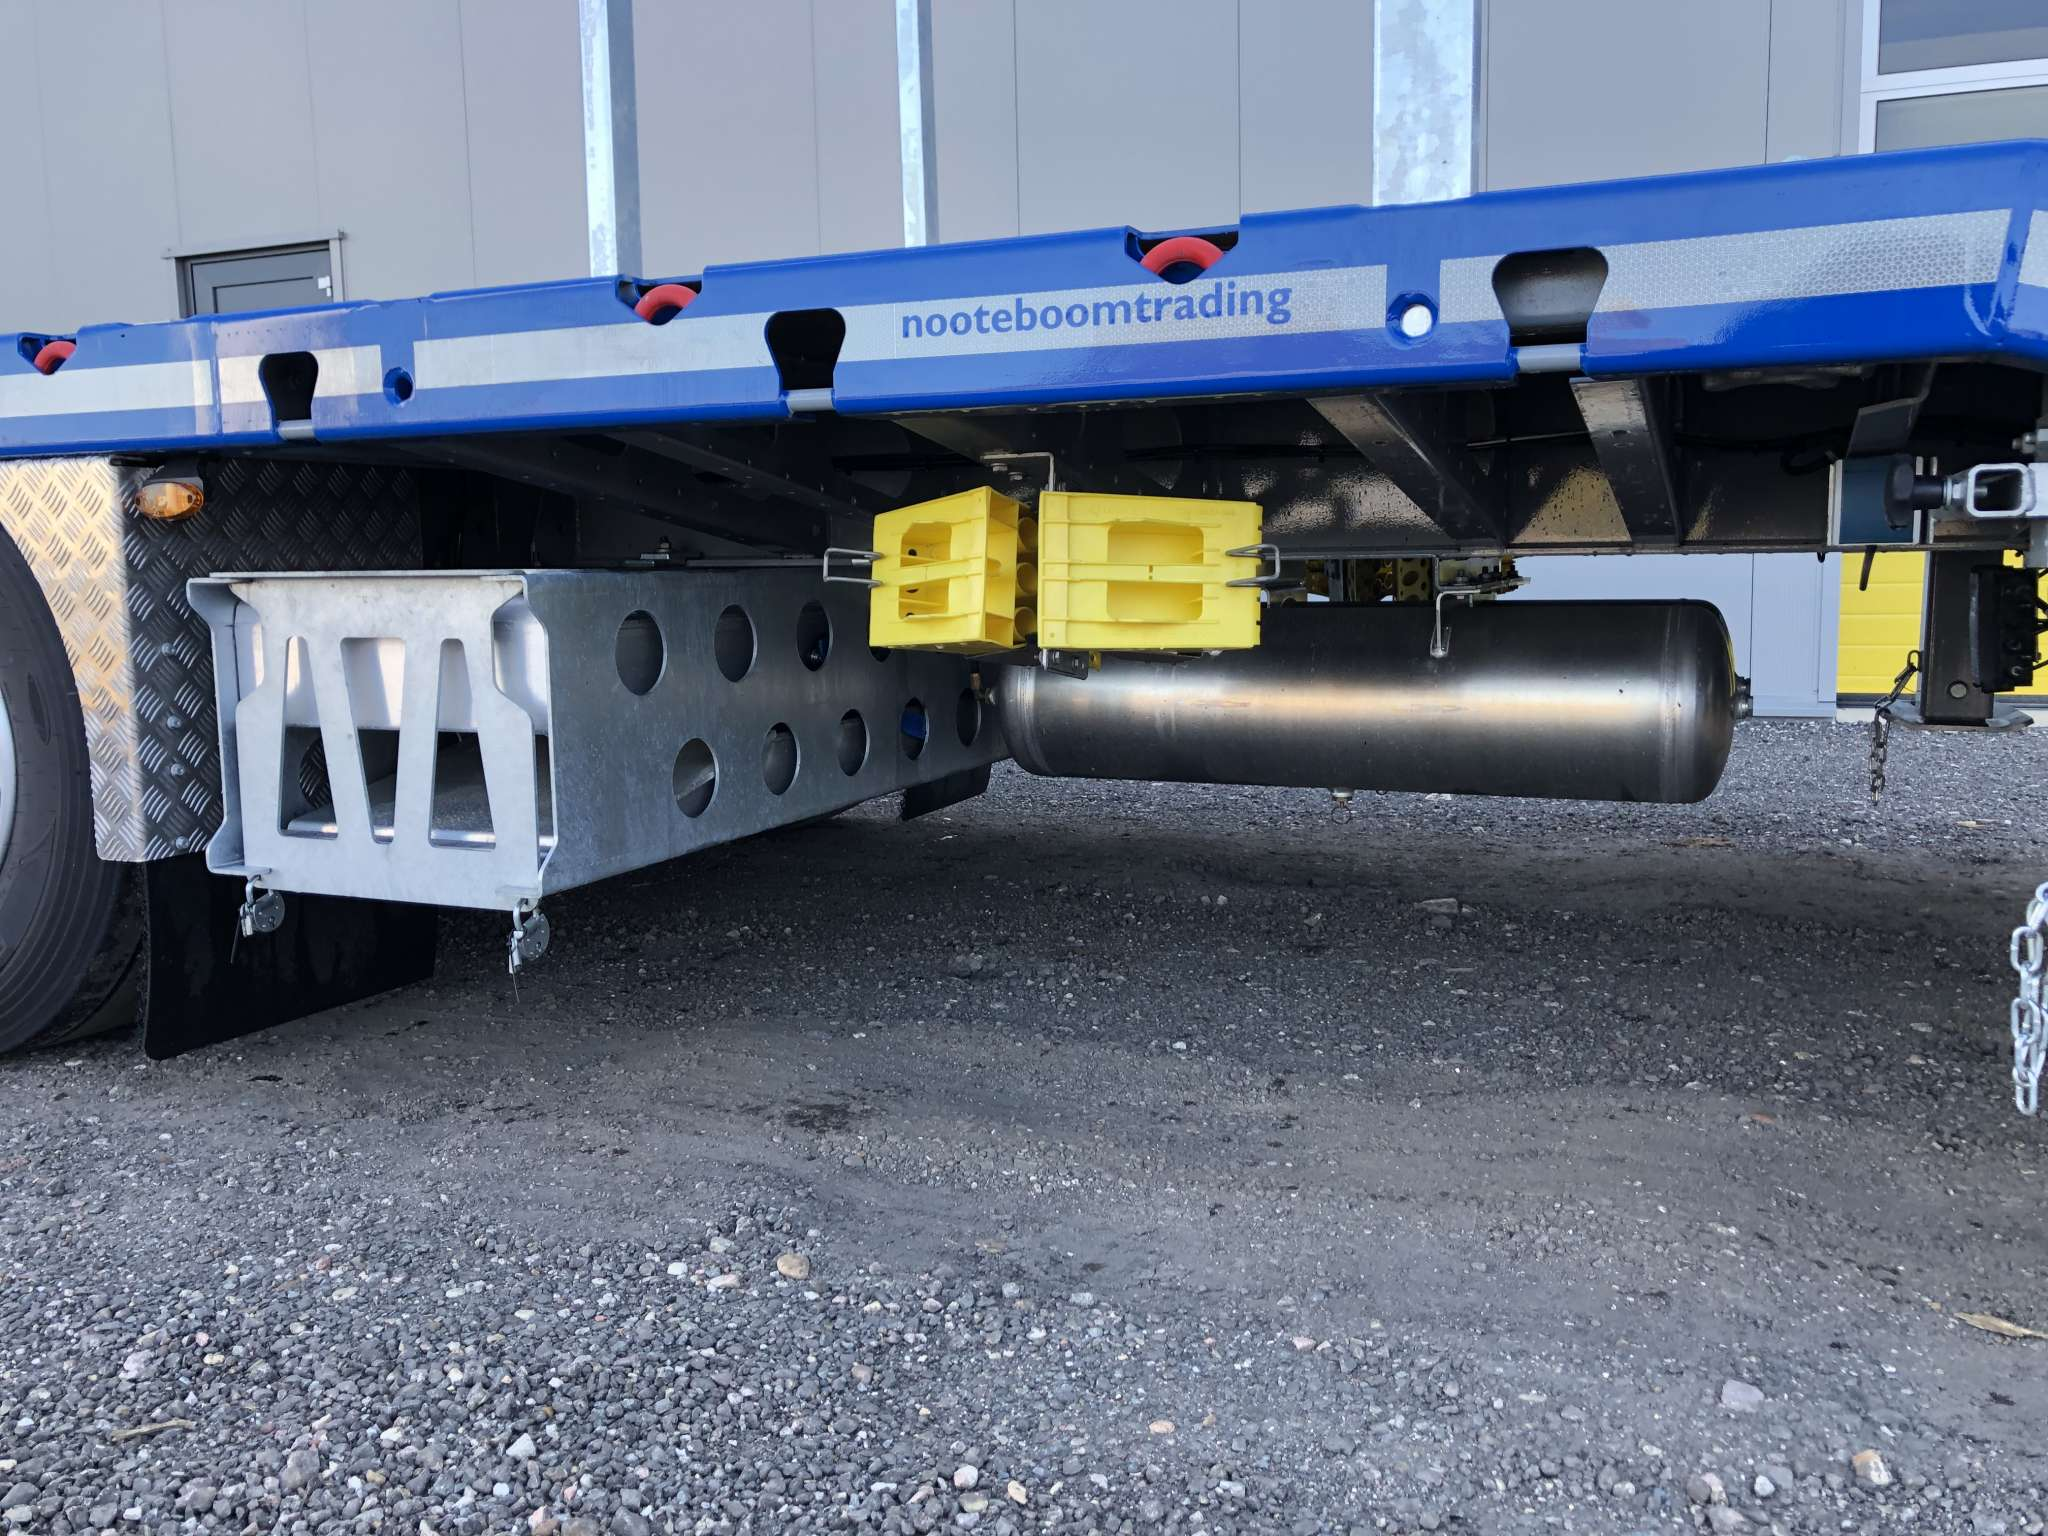 RINO® 3AXLE MEGA MACHINE TRAILER | EXTENDABLE TILL 17.5 M |SUPERLIGHT | PAYLOAD 36,6 TON | 3 UNITS ON STOCK